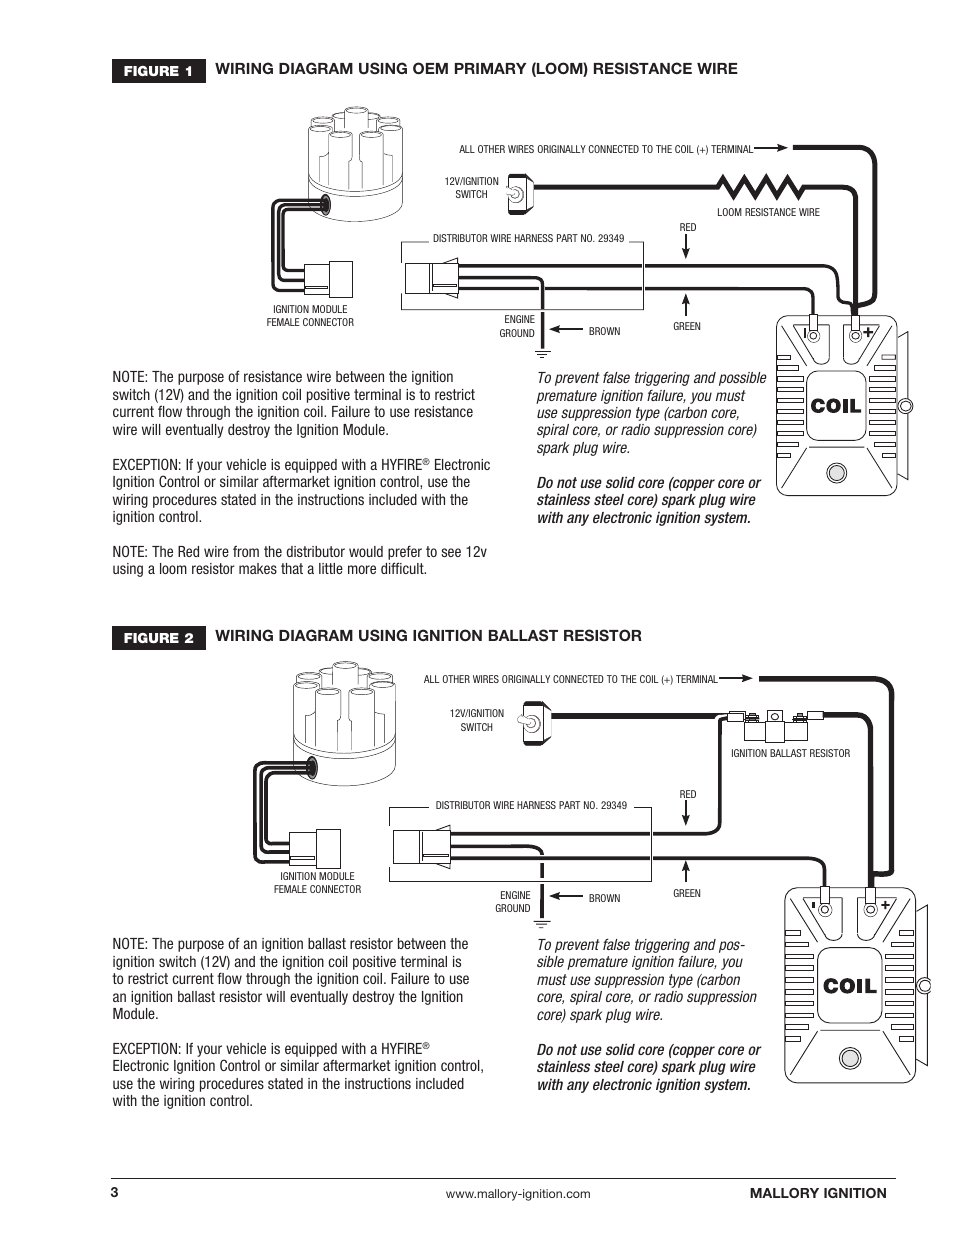 Wiring Diagram Note The Wiring Diagram Included In This Manual Is